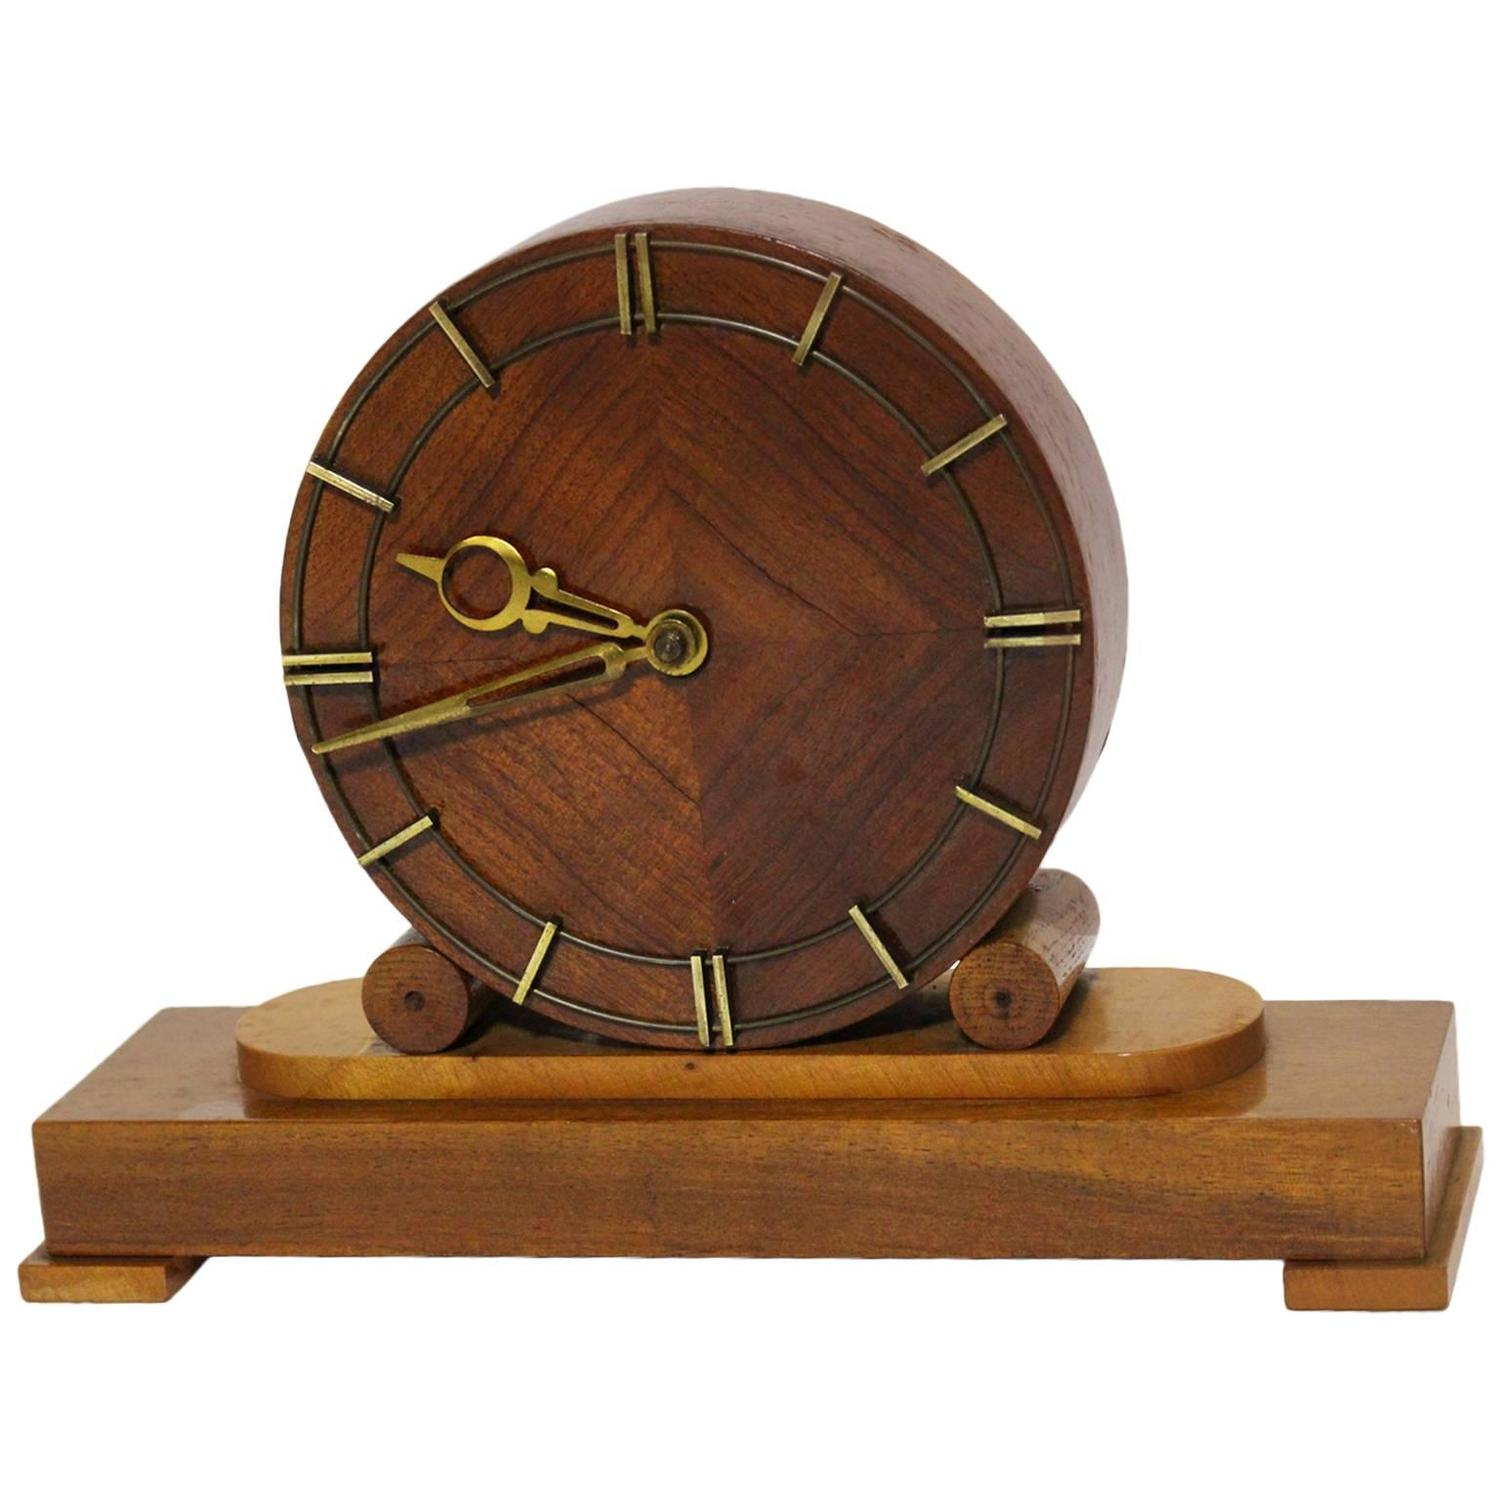 austrian mid century modern fireplace clock 1948 for sale at 1stdibs